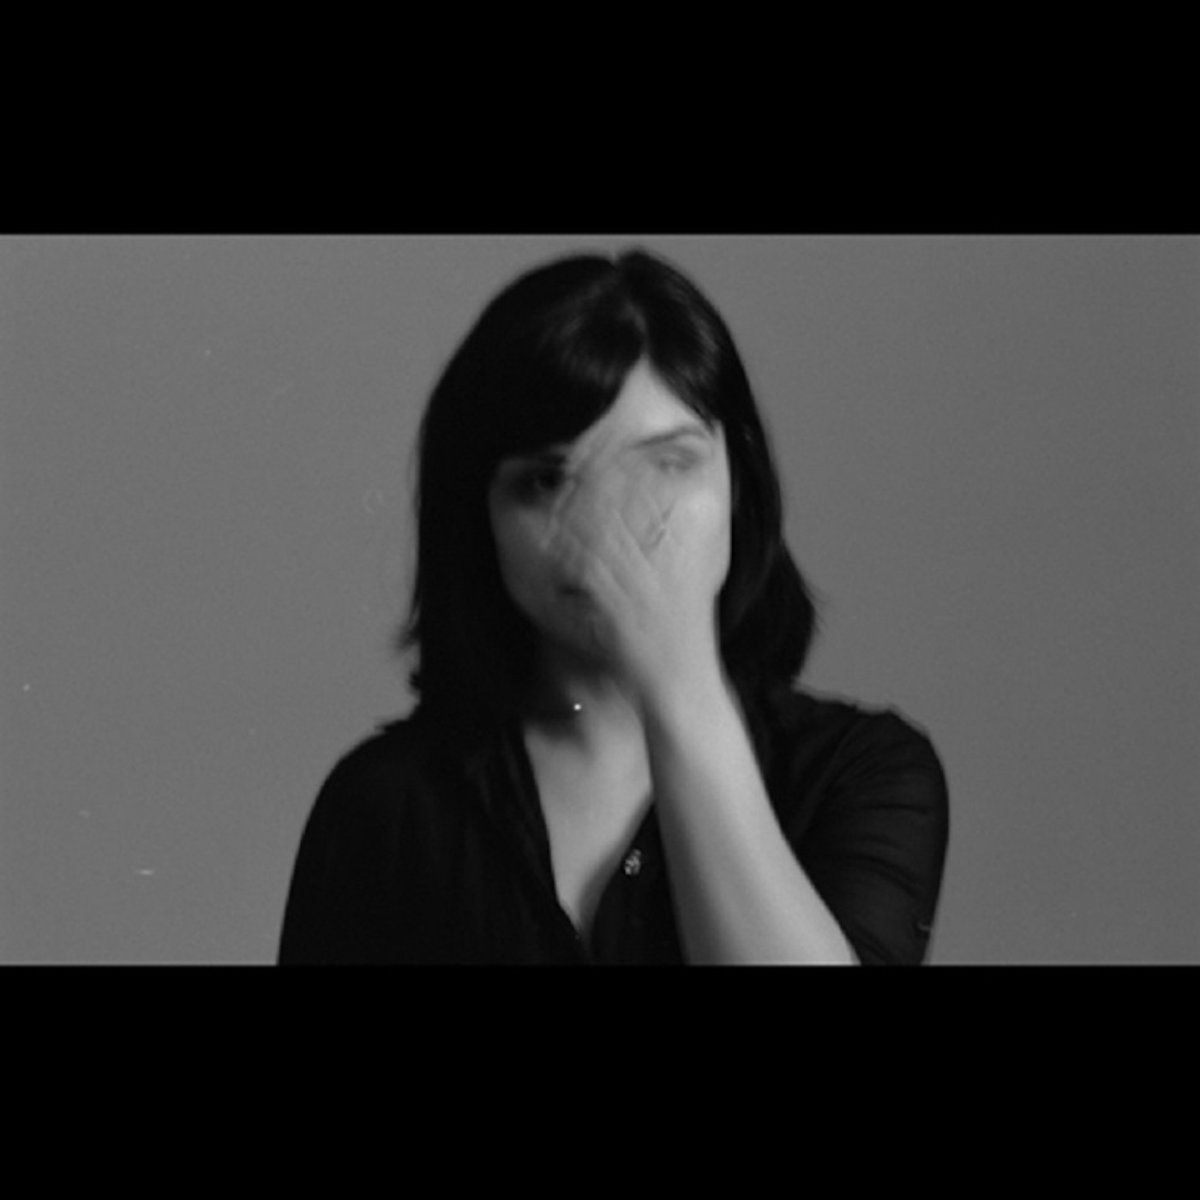 New music from Sarah Davachi: All My Circles Run